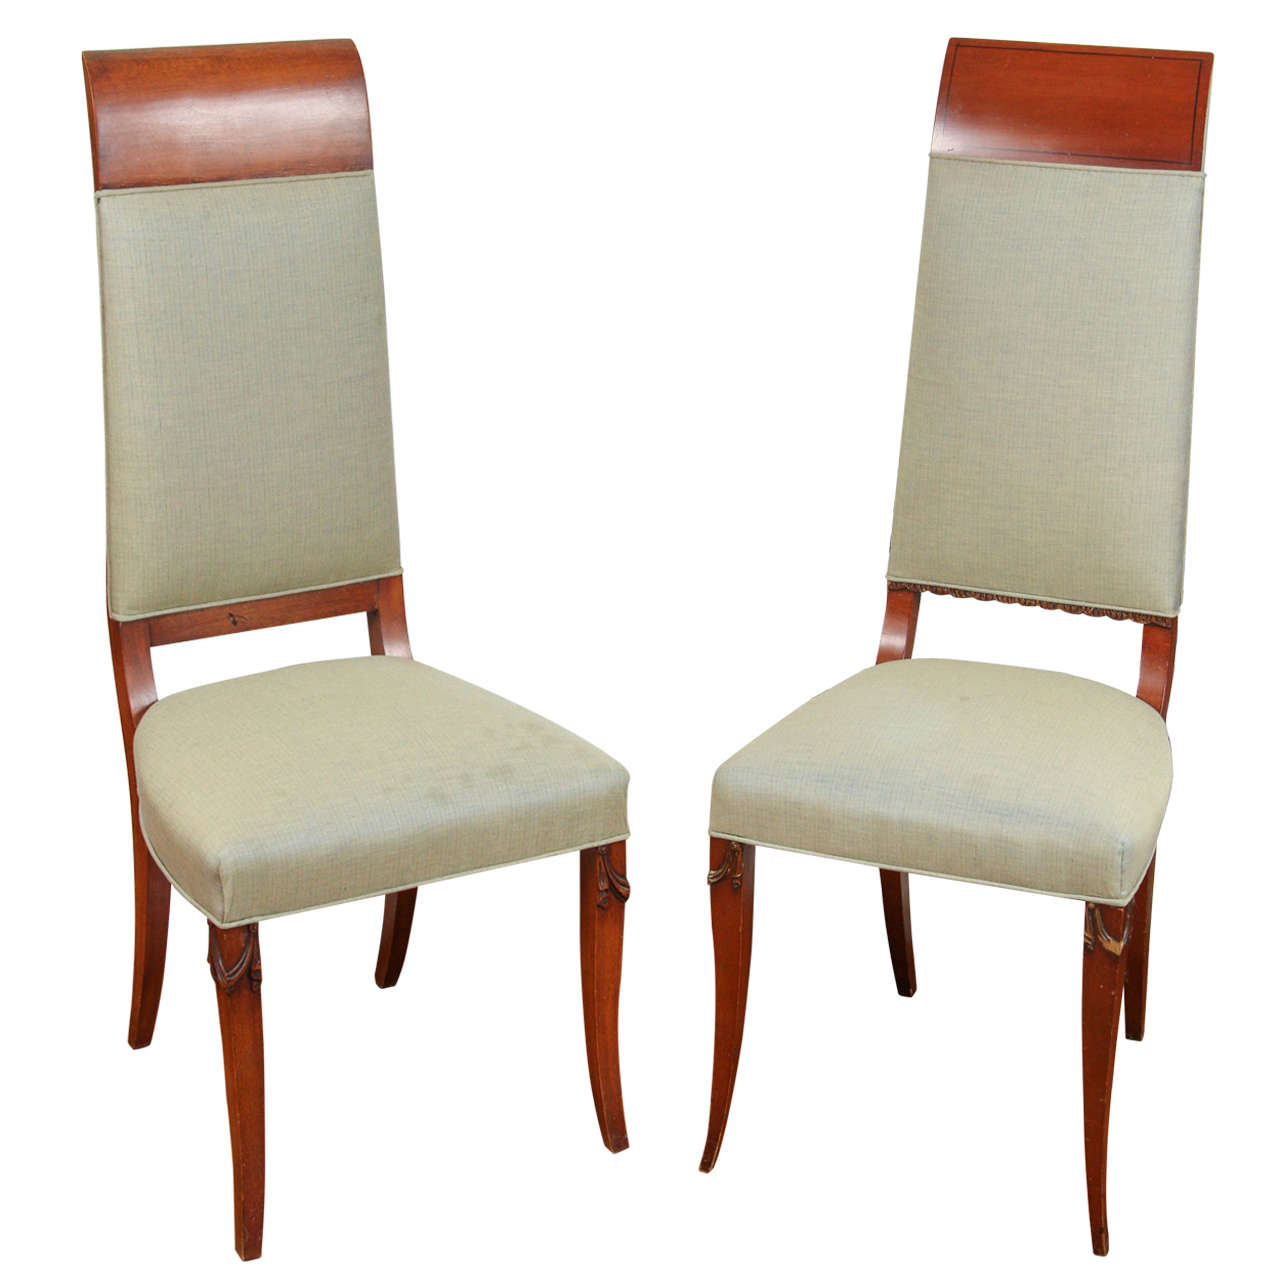 His and her deco salon chairs for sale at 1stdibs for Salon chairs for sale